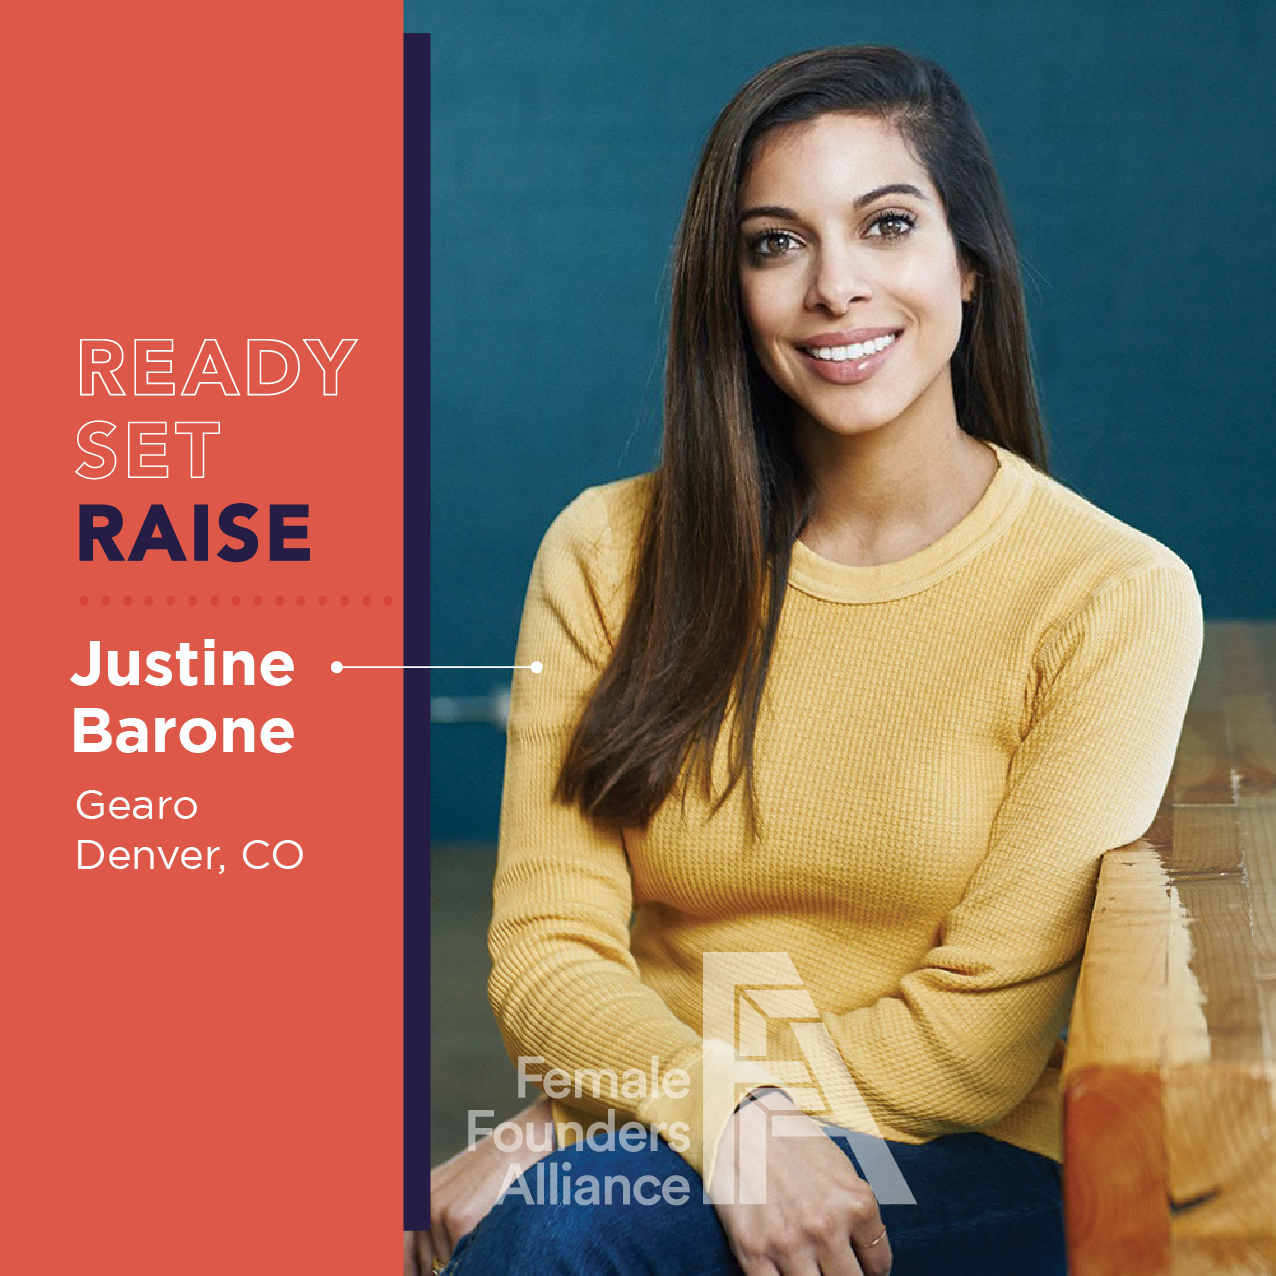 https://femalefounders.org/wp-content/uploads/2020/10/Social-Card-Justine-Barone.png